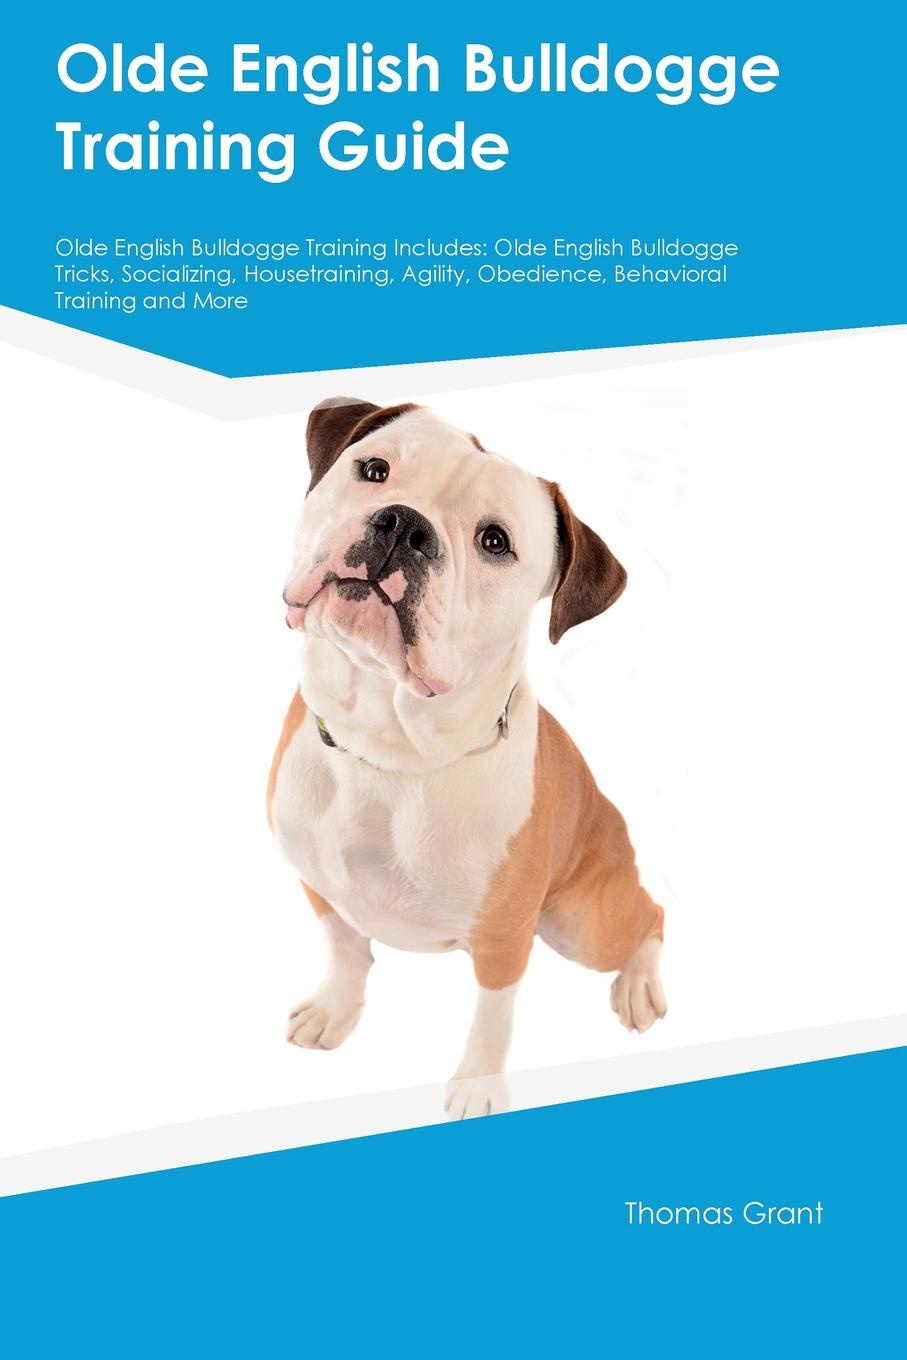 Stewart Johnston Olde English Bulldogge Training Guide Olde English Bulldogge Training Includes. Olde English Bulldogge Tricks, Socializing, Housetraining, Agility, Obedience, Behavioral Training and More mitchell bruce a guide to old english